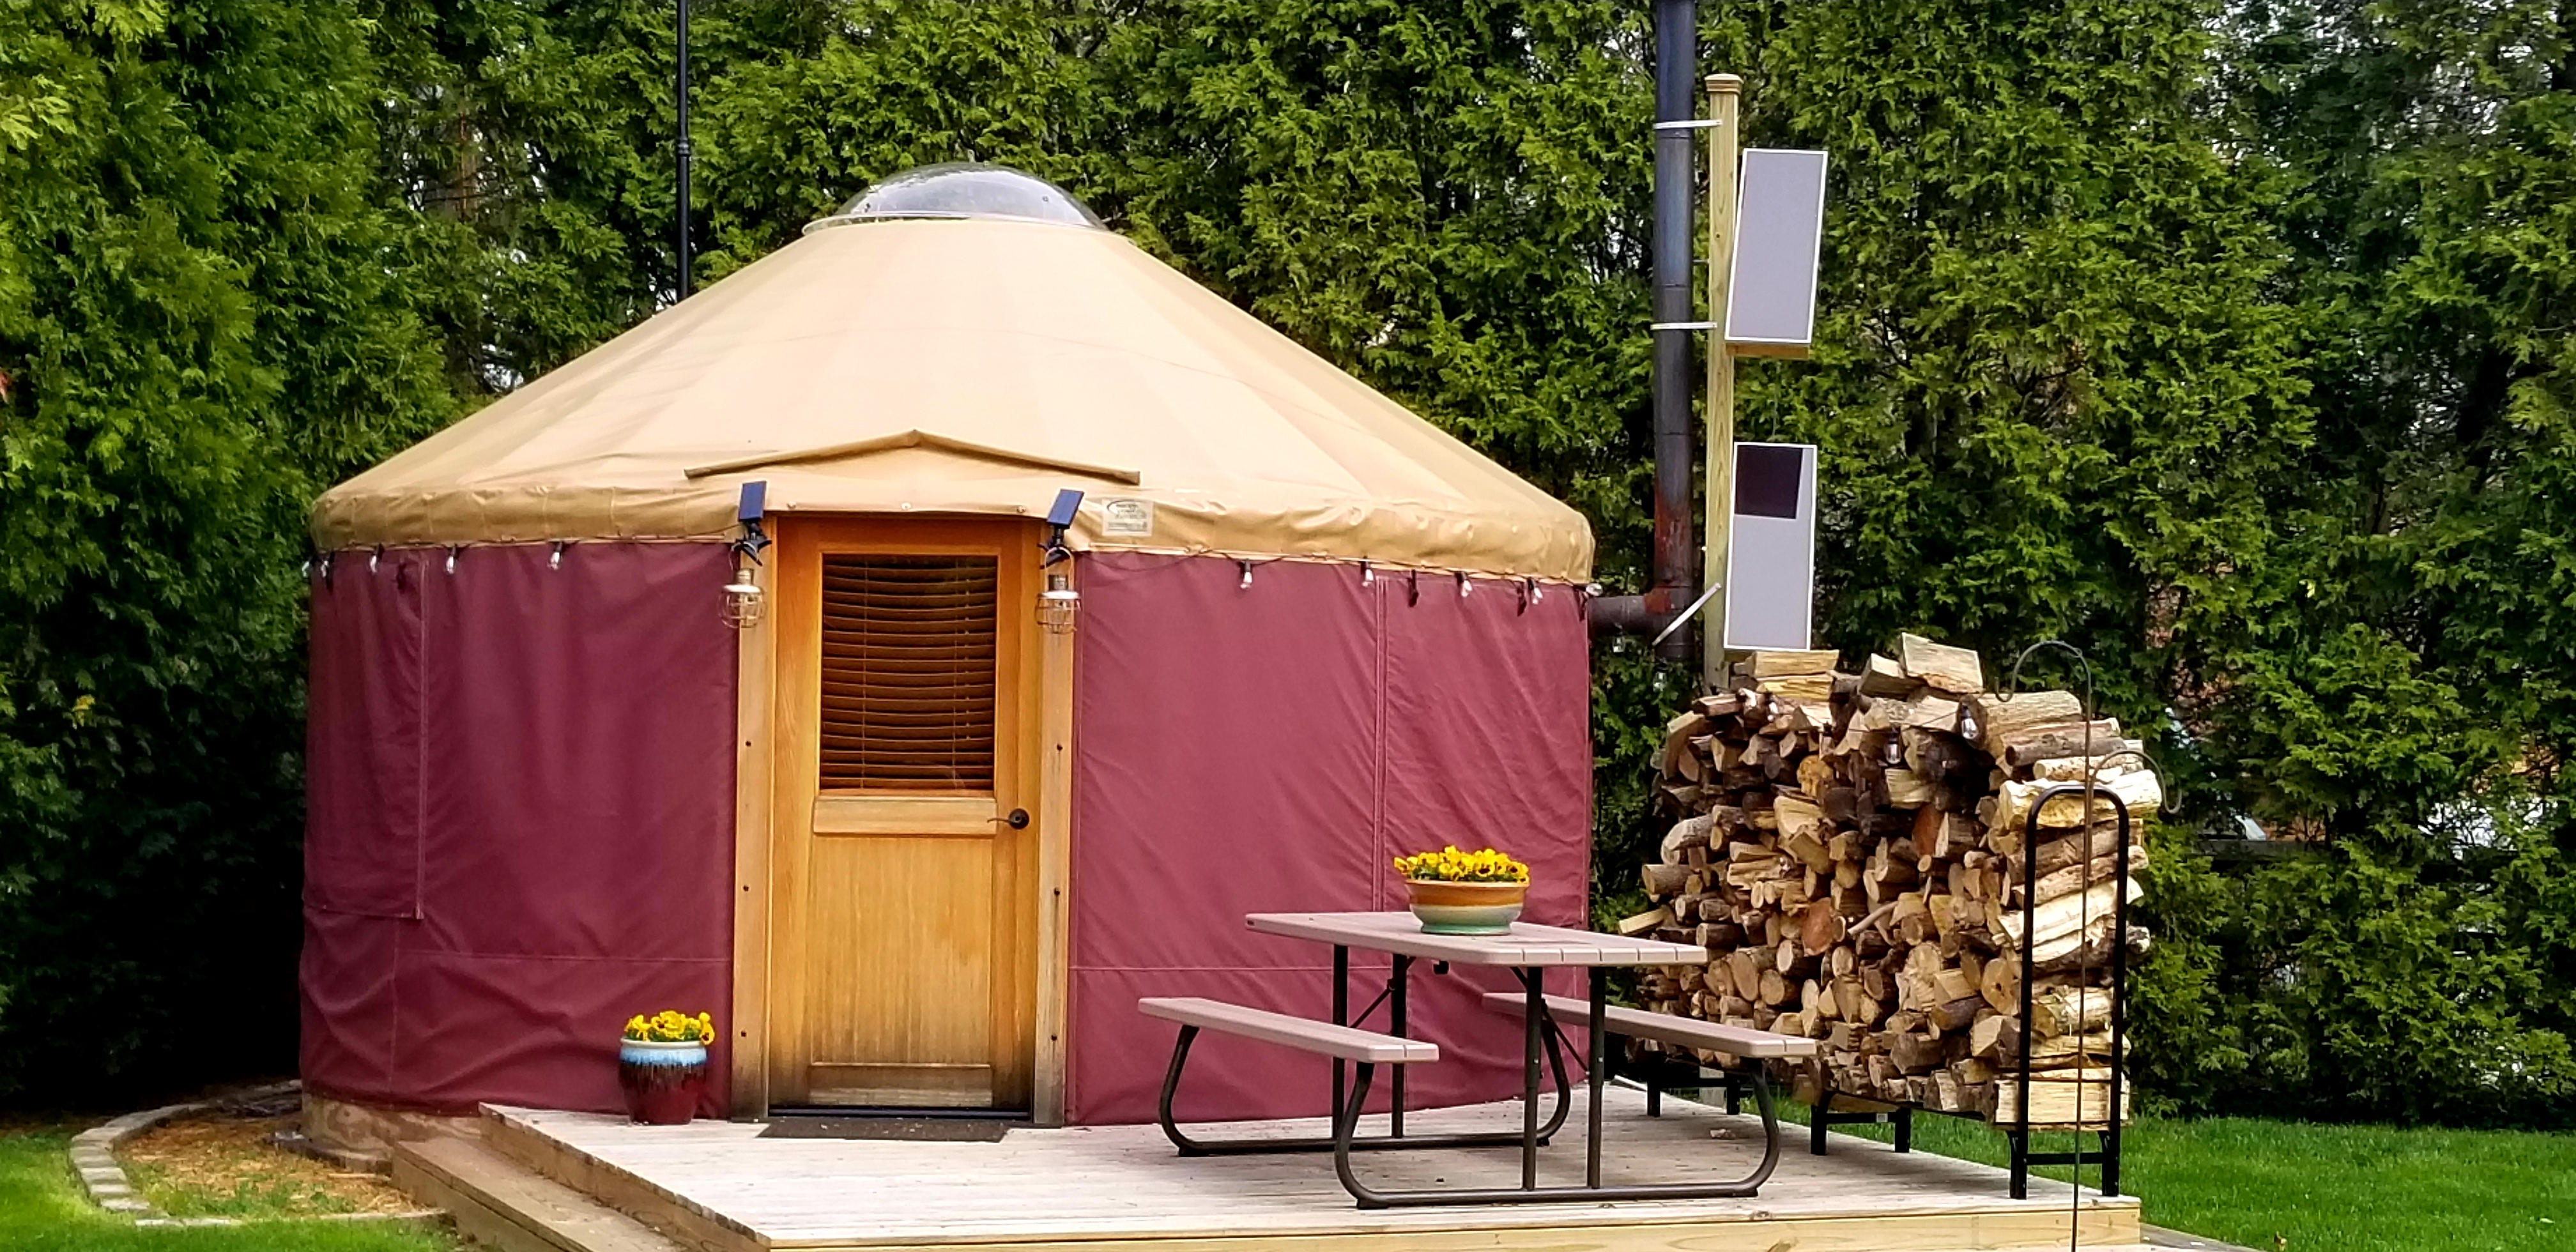 Enjoy Yurt Stay A Suburban Glamping Experience Yurts For Rent In Dayton Ohio United States The yaranga, used by peoples in the northern parts of russia, is a similar form of shelter. yurts for rent in dayton ohio